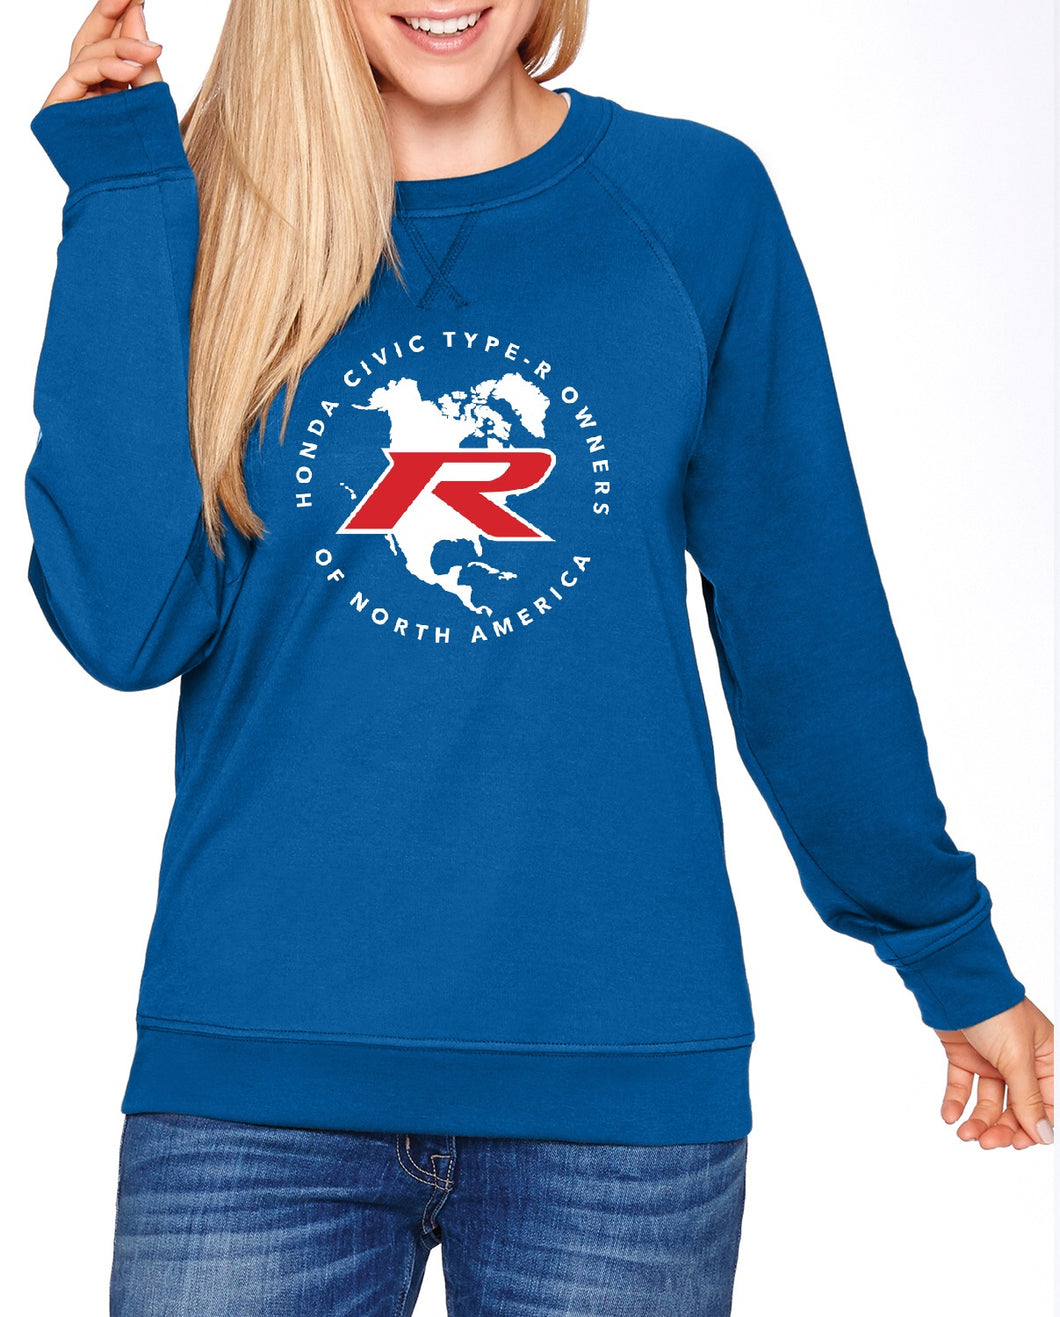 Type R Owners Sweatshirt - Brilliant Sporty Blue